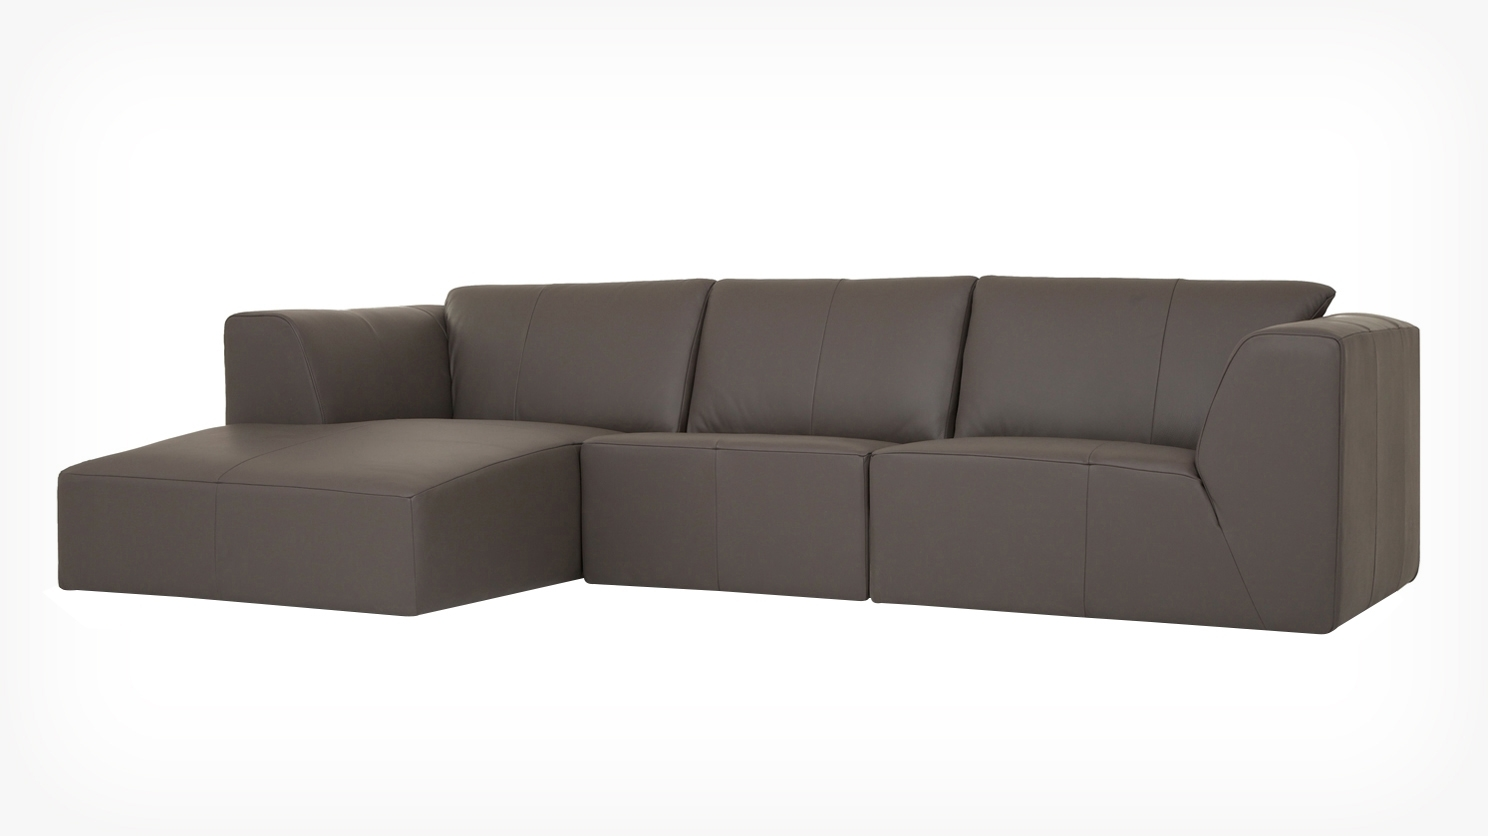 Morten 3 Piece Sectional Sofa With Chaise – Leather With Regard To 3 Piece Sectional Sleeper Sofas (View 20 of 20)